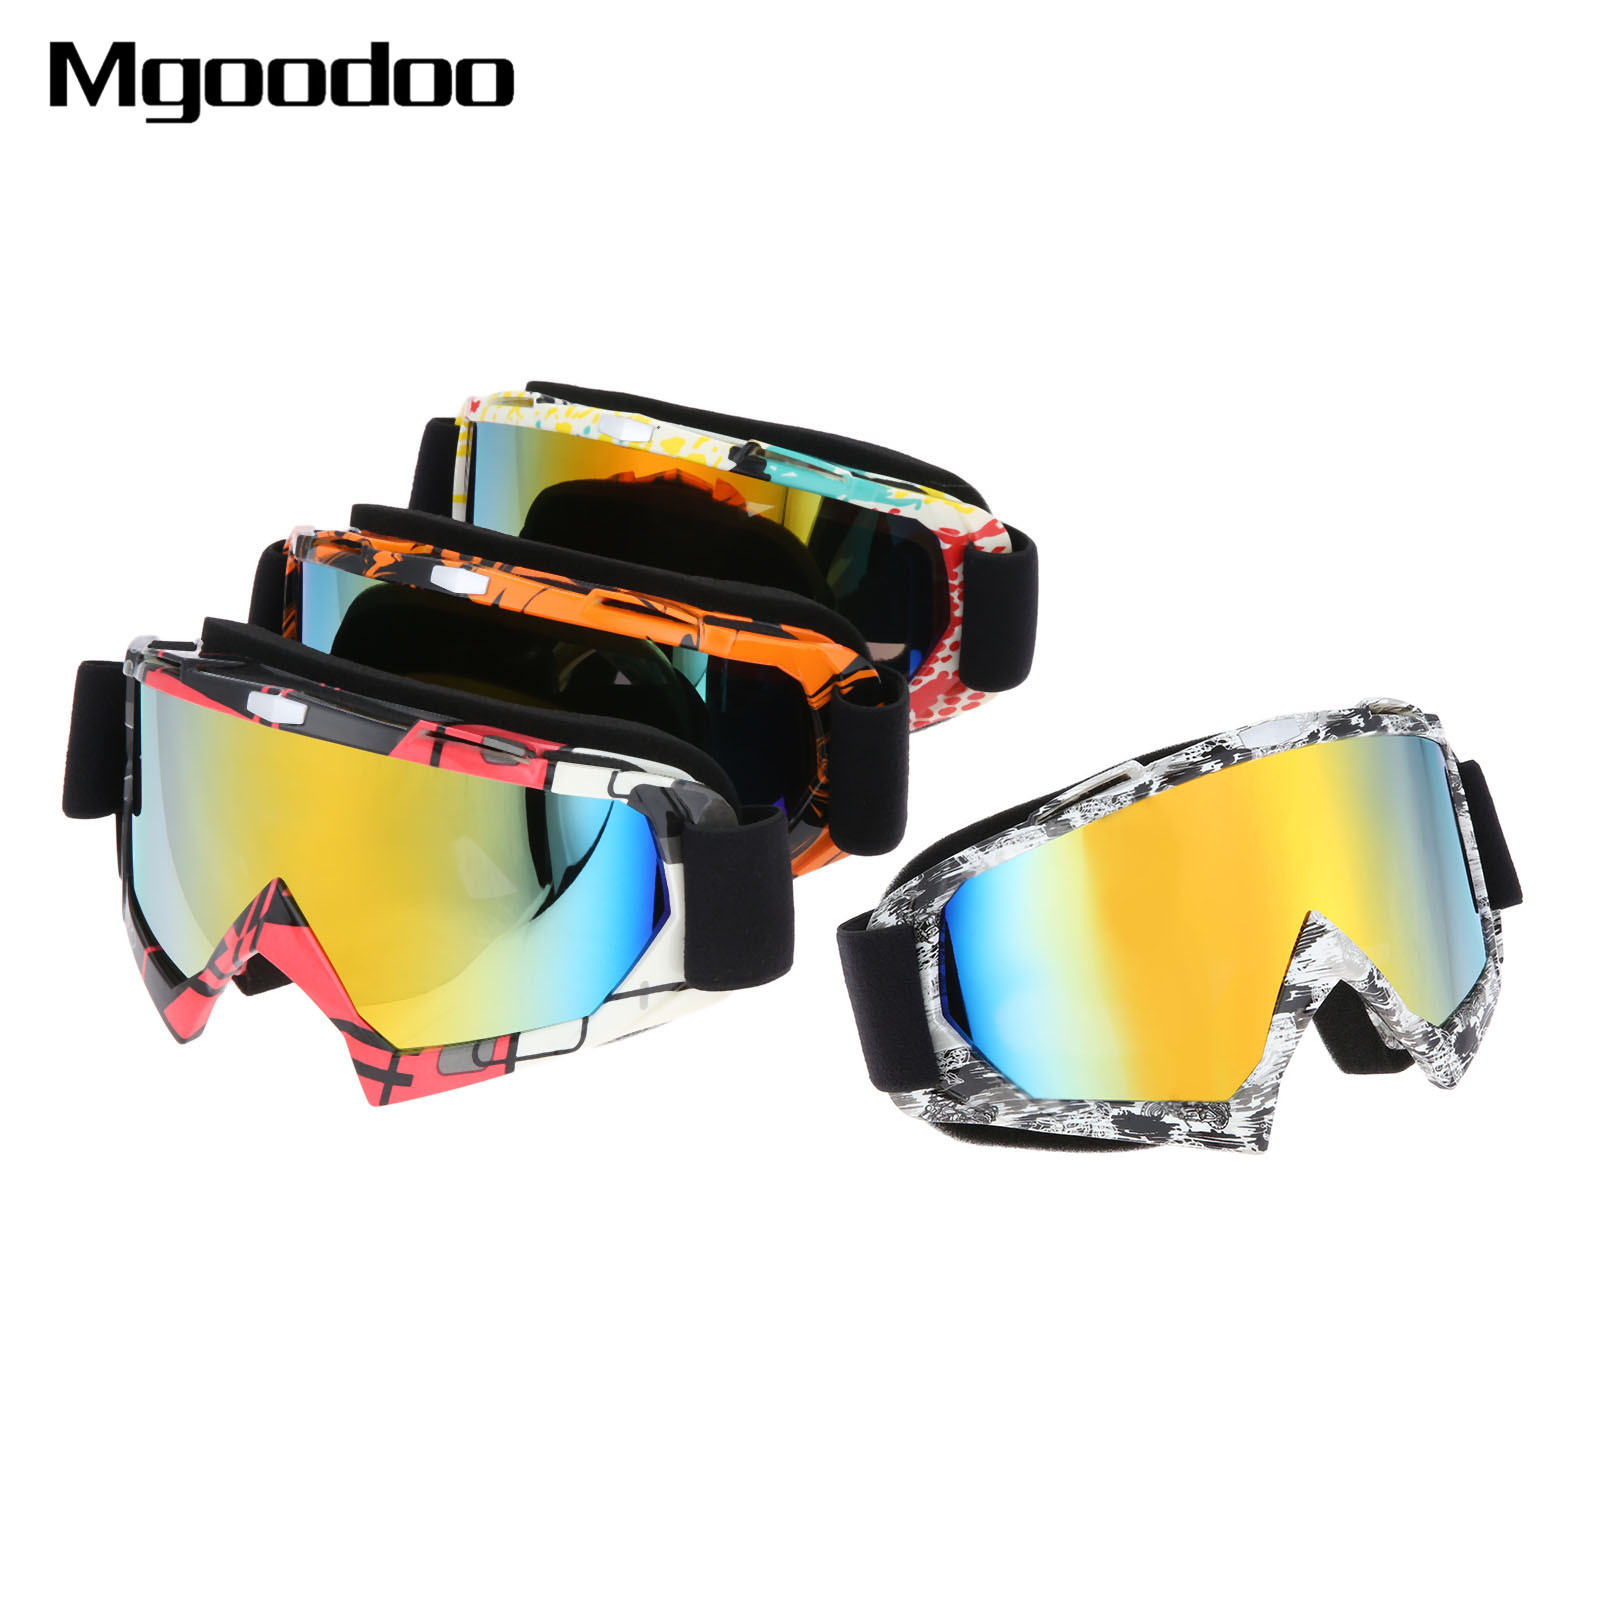 Motorcycle Goggles Ski Glasses Motocross Goggles Racing Eyewear Snowboard Glasses Colorful Lens Windproof Glasses Anti-UV